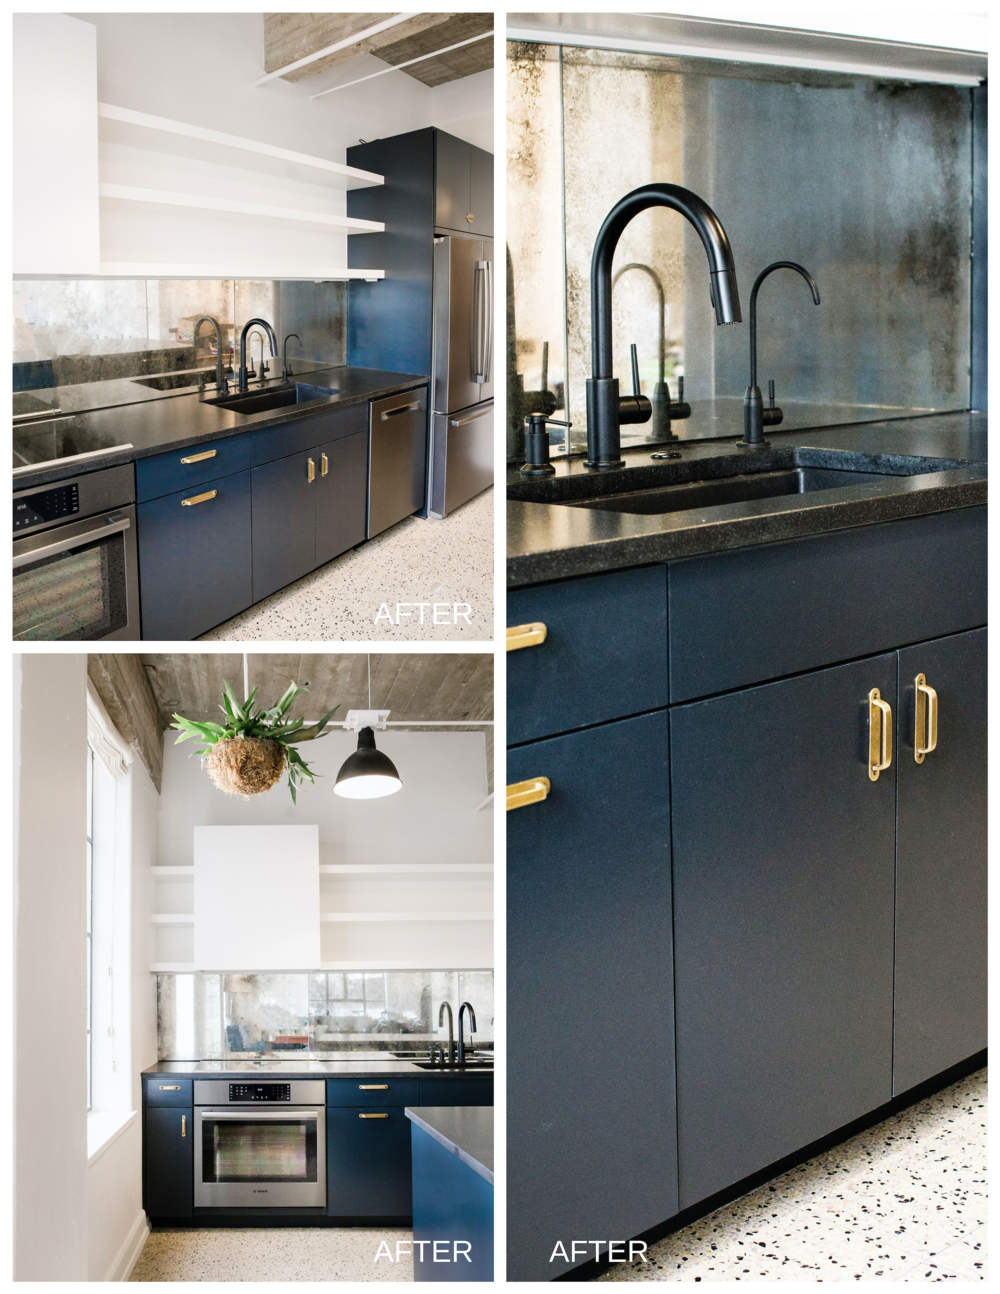 The selection and installation of materials kept with the industrial feel of the kitchen. Here are some that contributed to the overall design aesthetic: Appliances— Bosch Black Stainless Steel; Countertops—Honed Black Leather Granite; Backsplash—Custom Antique Mirror Panels; Faucet—Delta Matte Black; Cabinetry paint—Farrow & Ball Railings; Pulls & Hardware—Antique Brass or Matte Black. Allison Crawford, Designer.